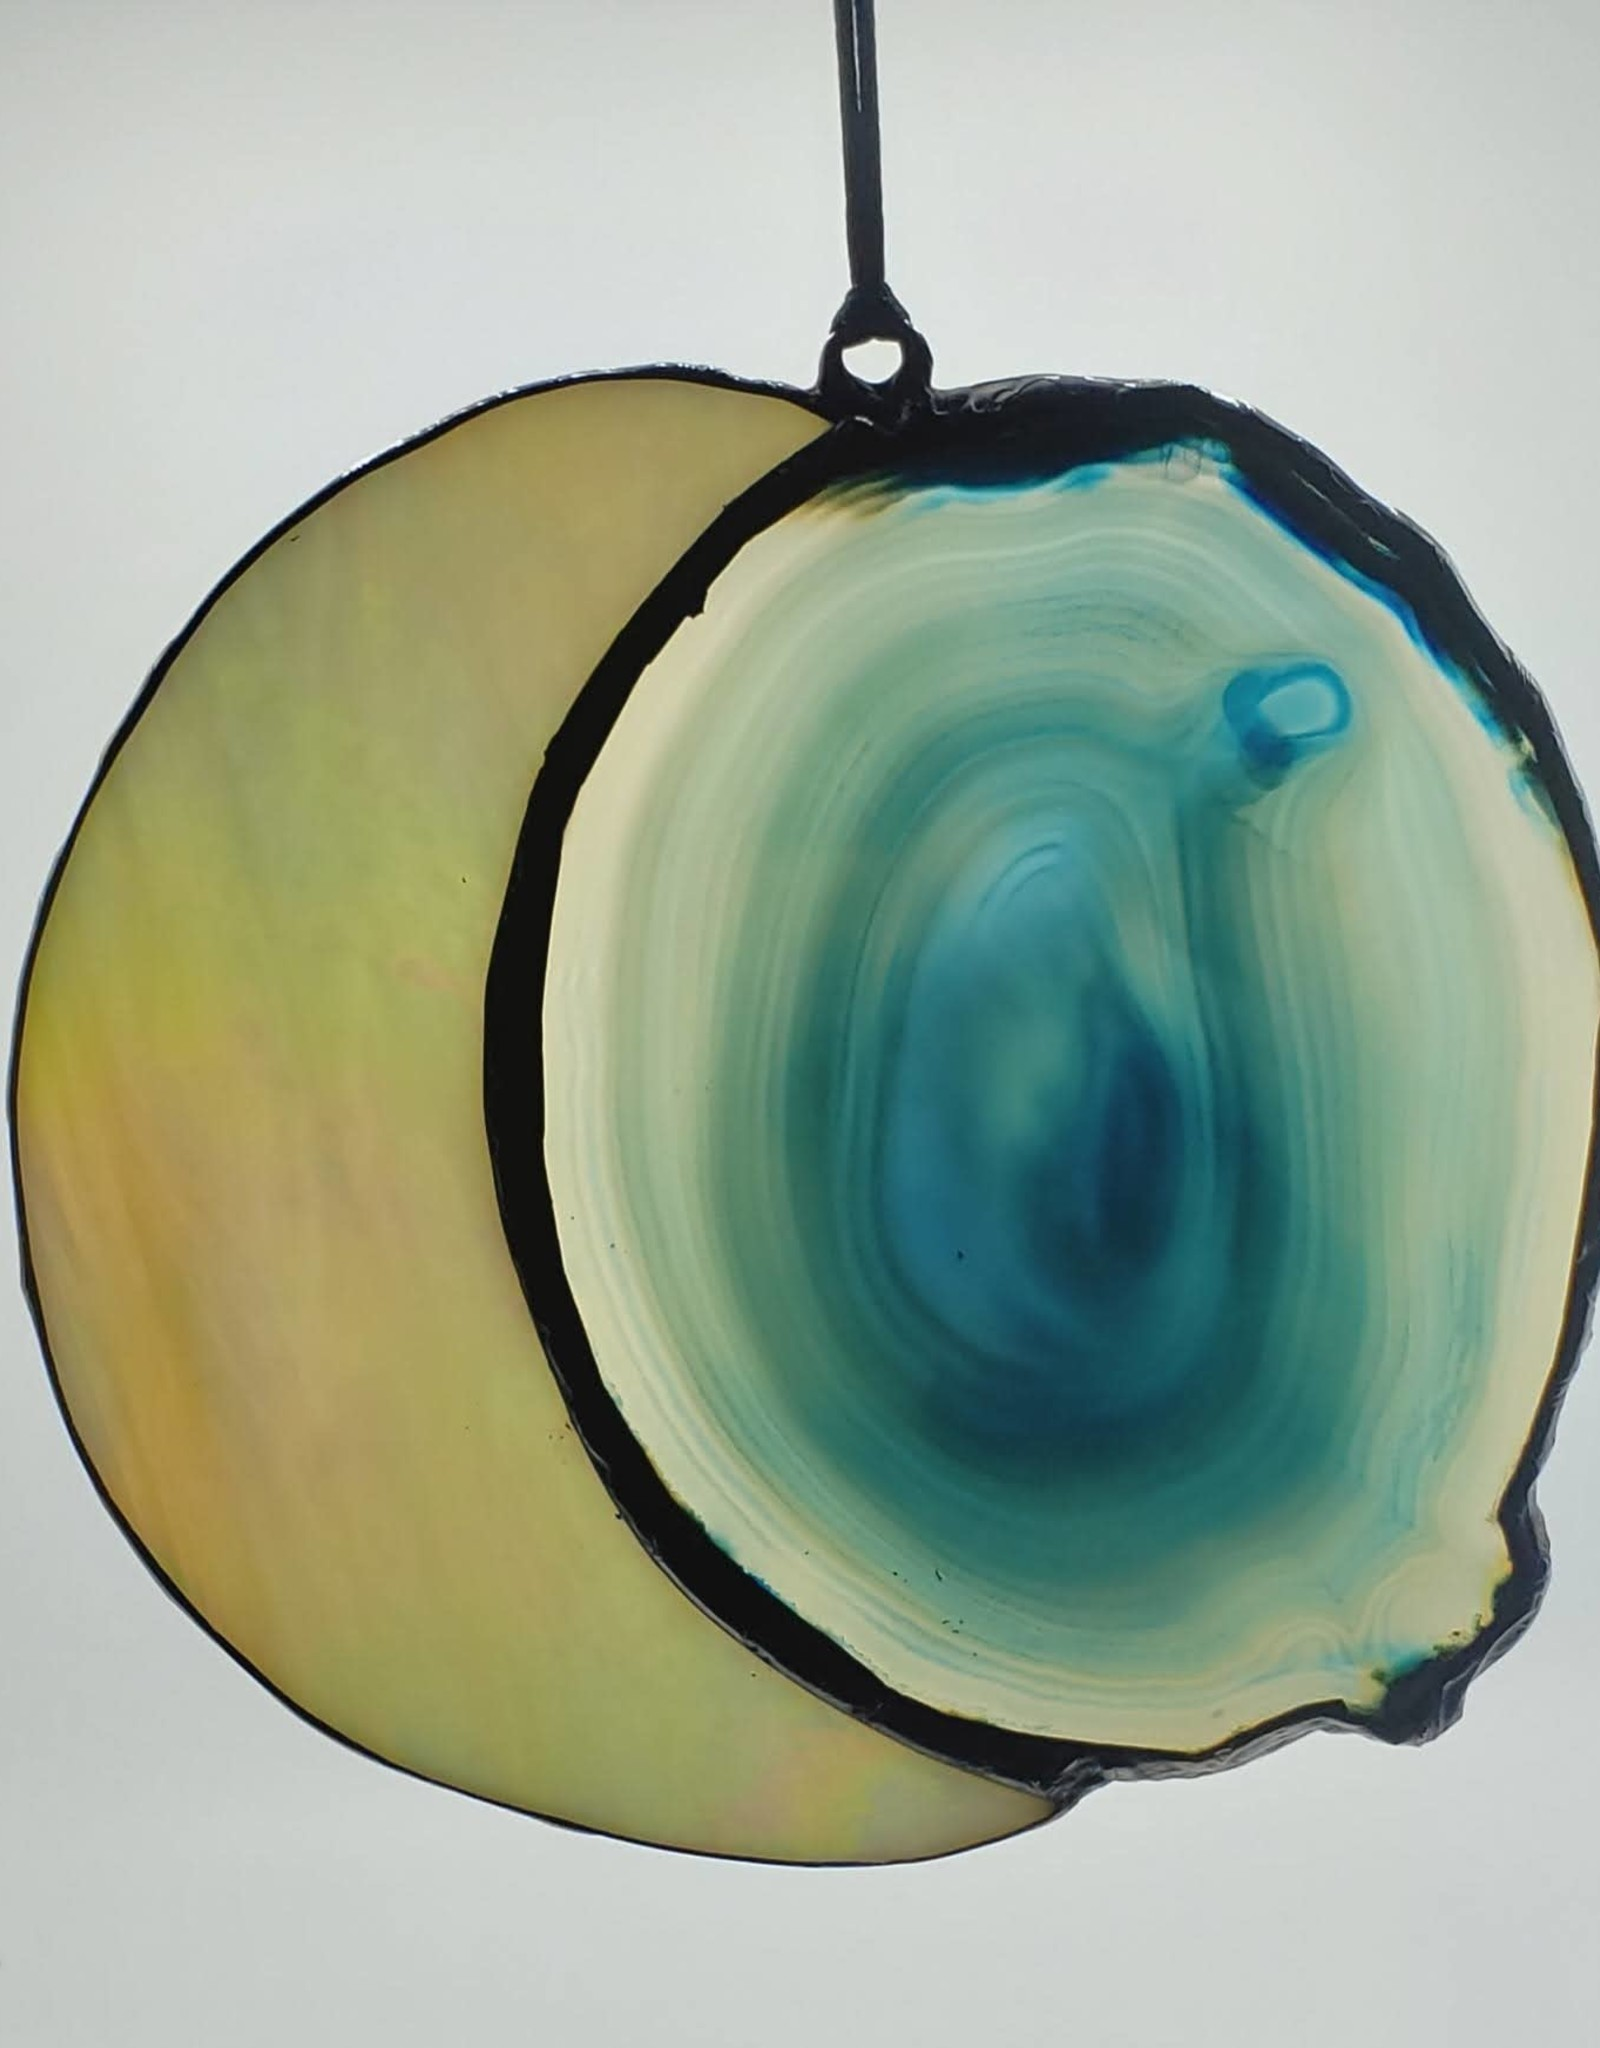 Redux Large Moon Agate Slice Blue Suncatcher, Iridescent Stained Glass